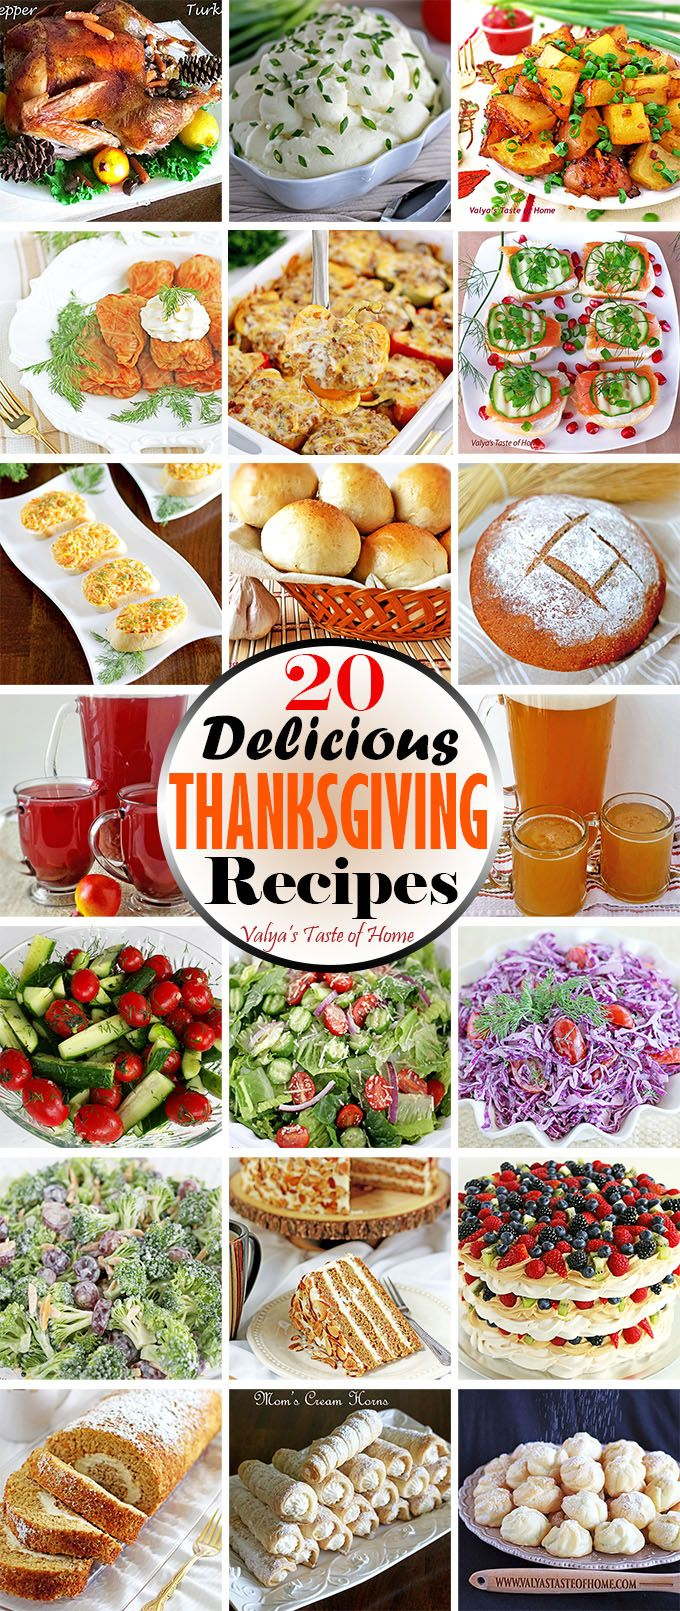 Find a variety of different recipes pieced together to help ease your Thanksgiving dinner prep anxiety. Most of the recipes on this list can be prepared ahead of time. It will be worth your time, I promise! So I hope these tips will help you enjoy cooking and baking with less hectic and stress as it can make or break your good times.